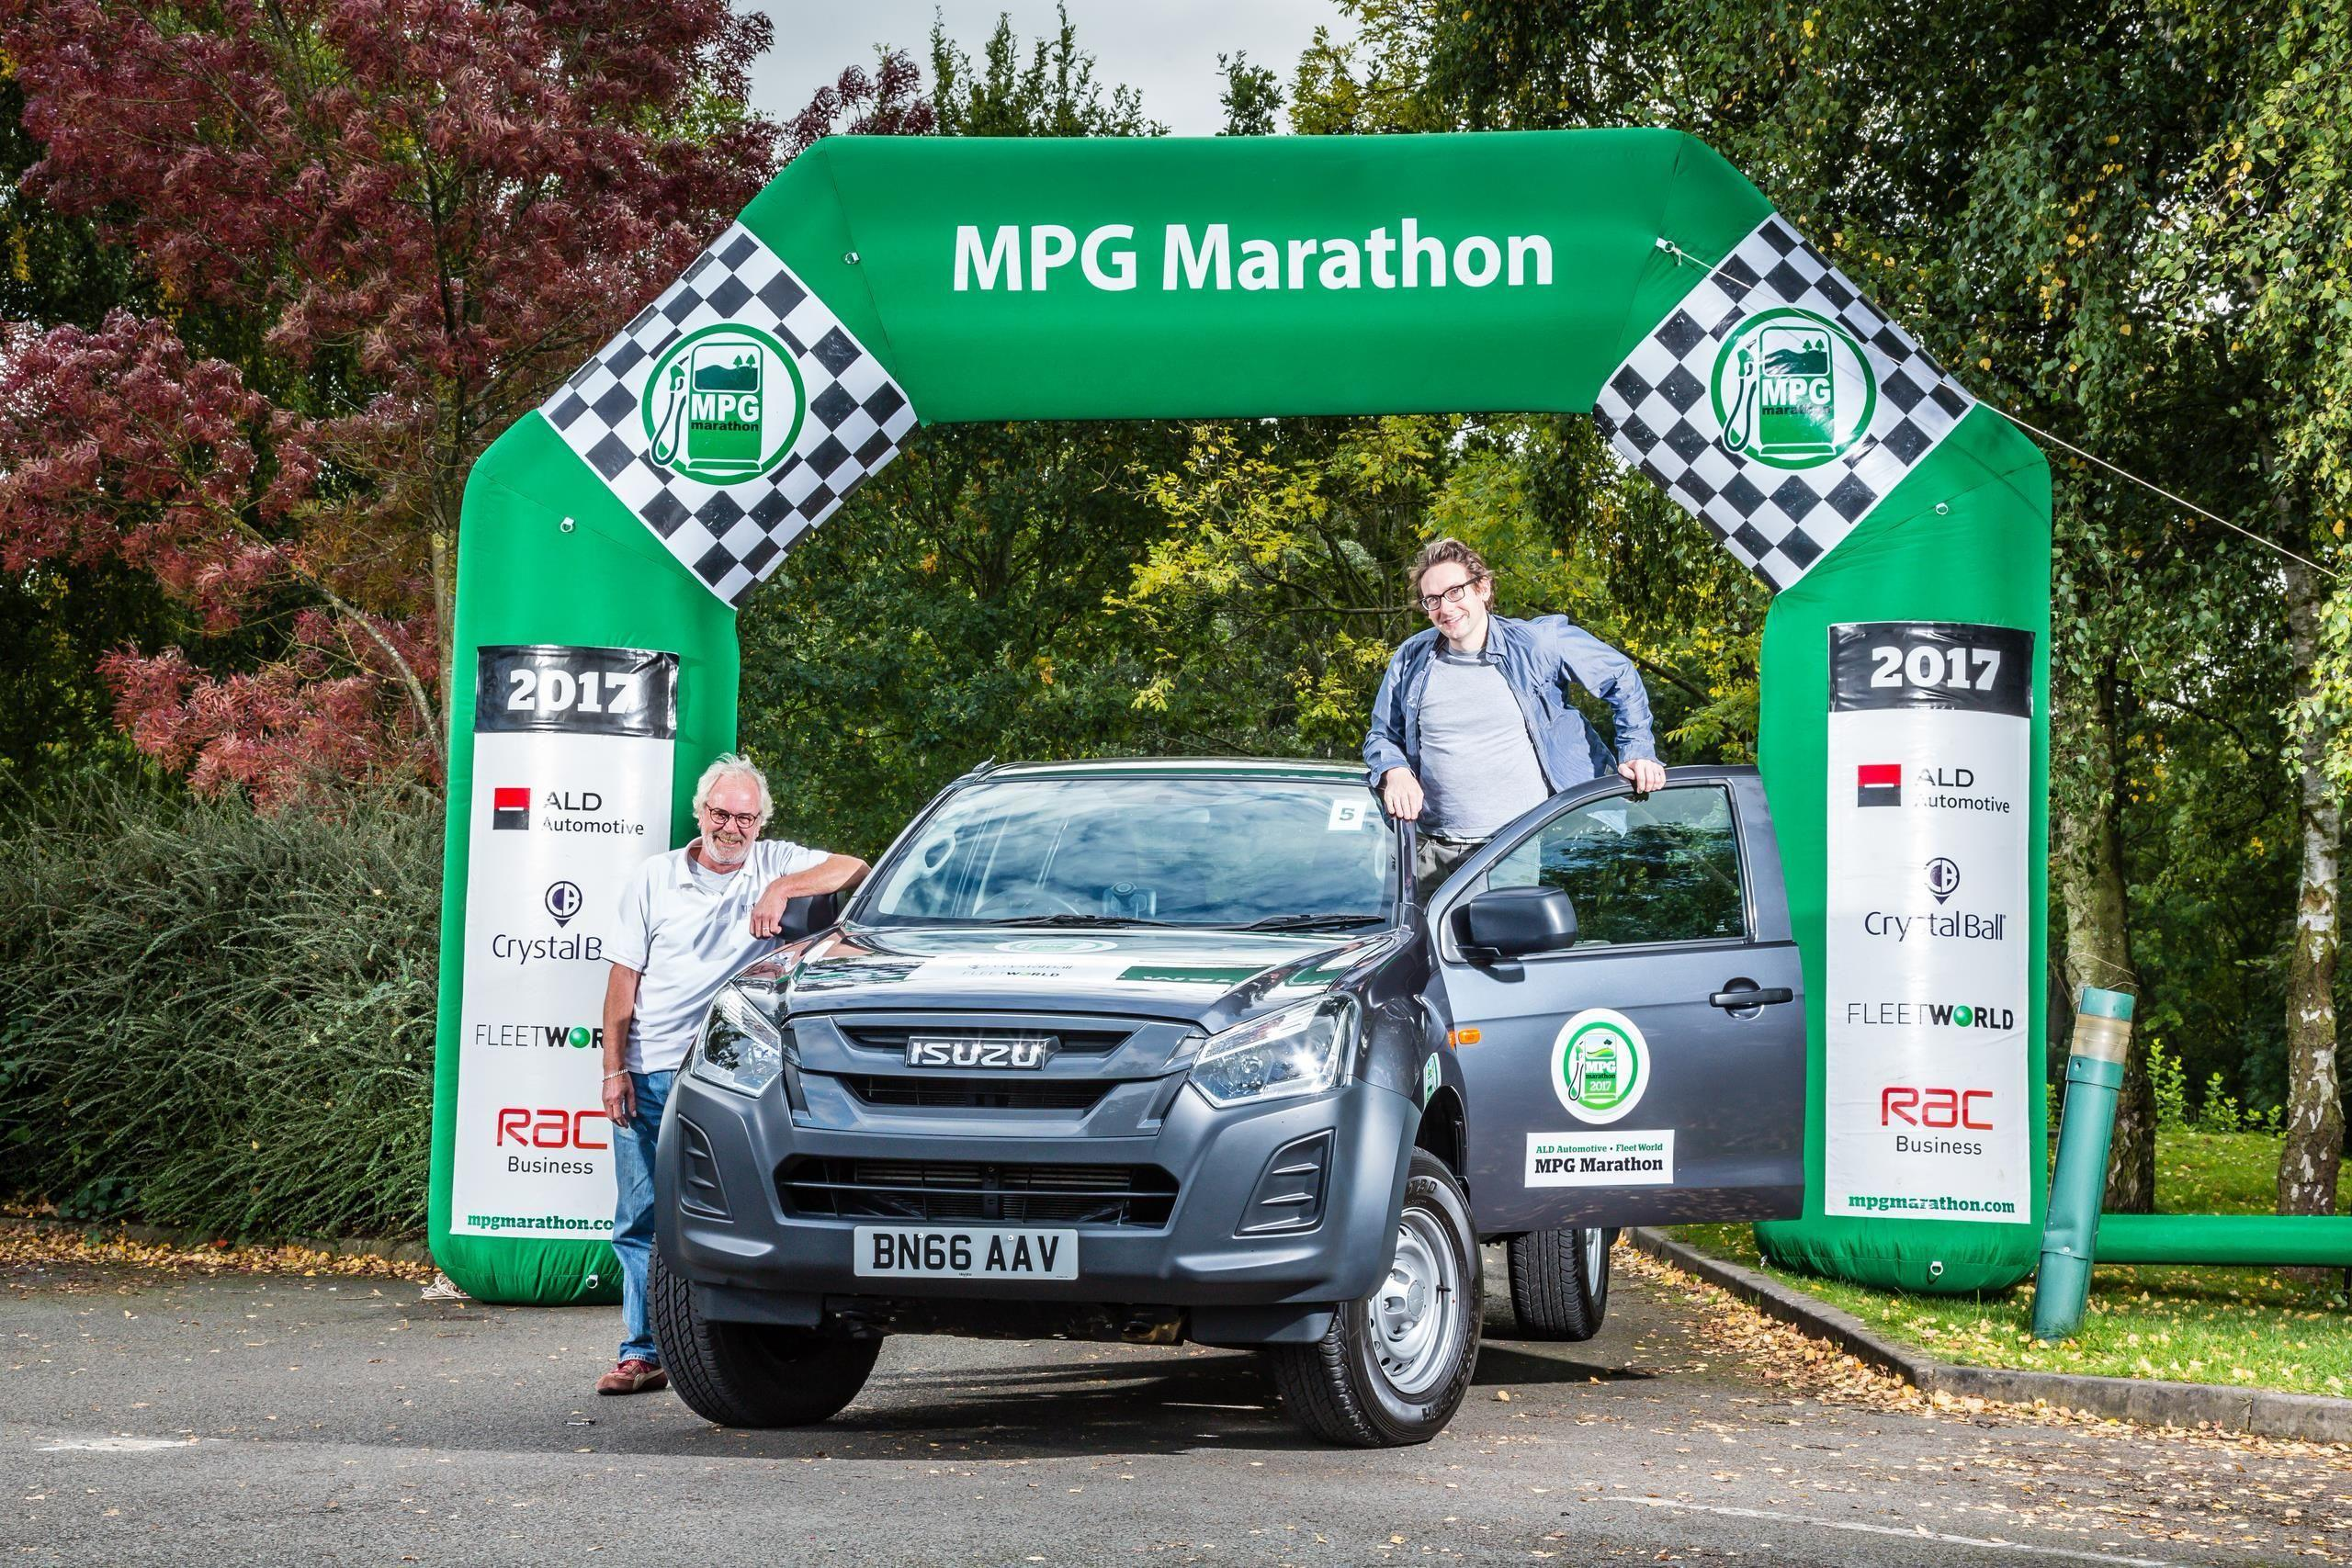 ISUZU SUCCESS IN 2017 MPG MARATHON